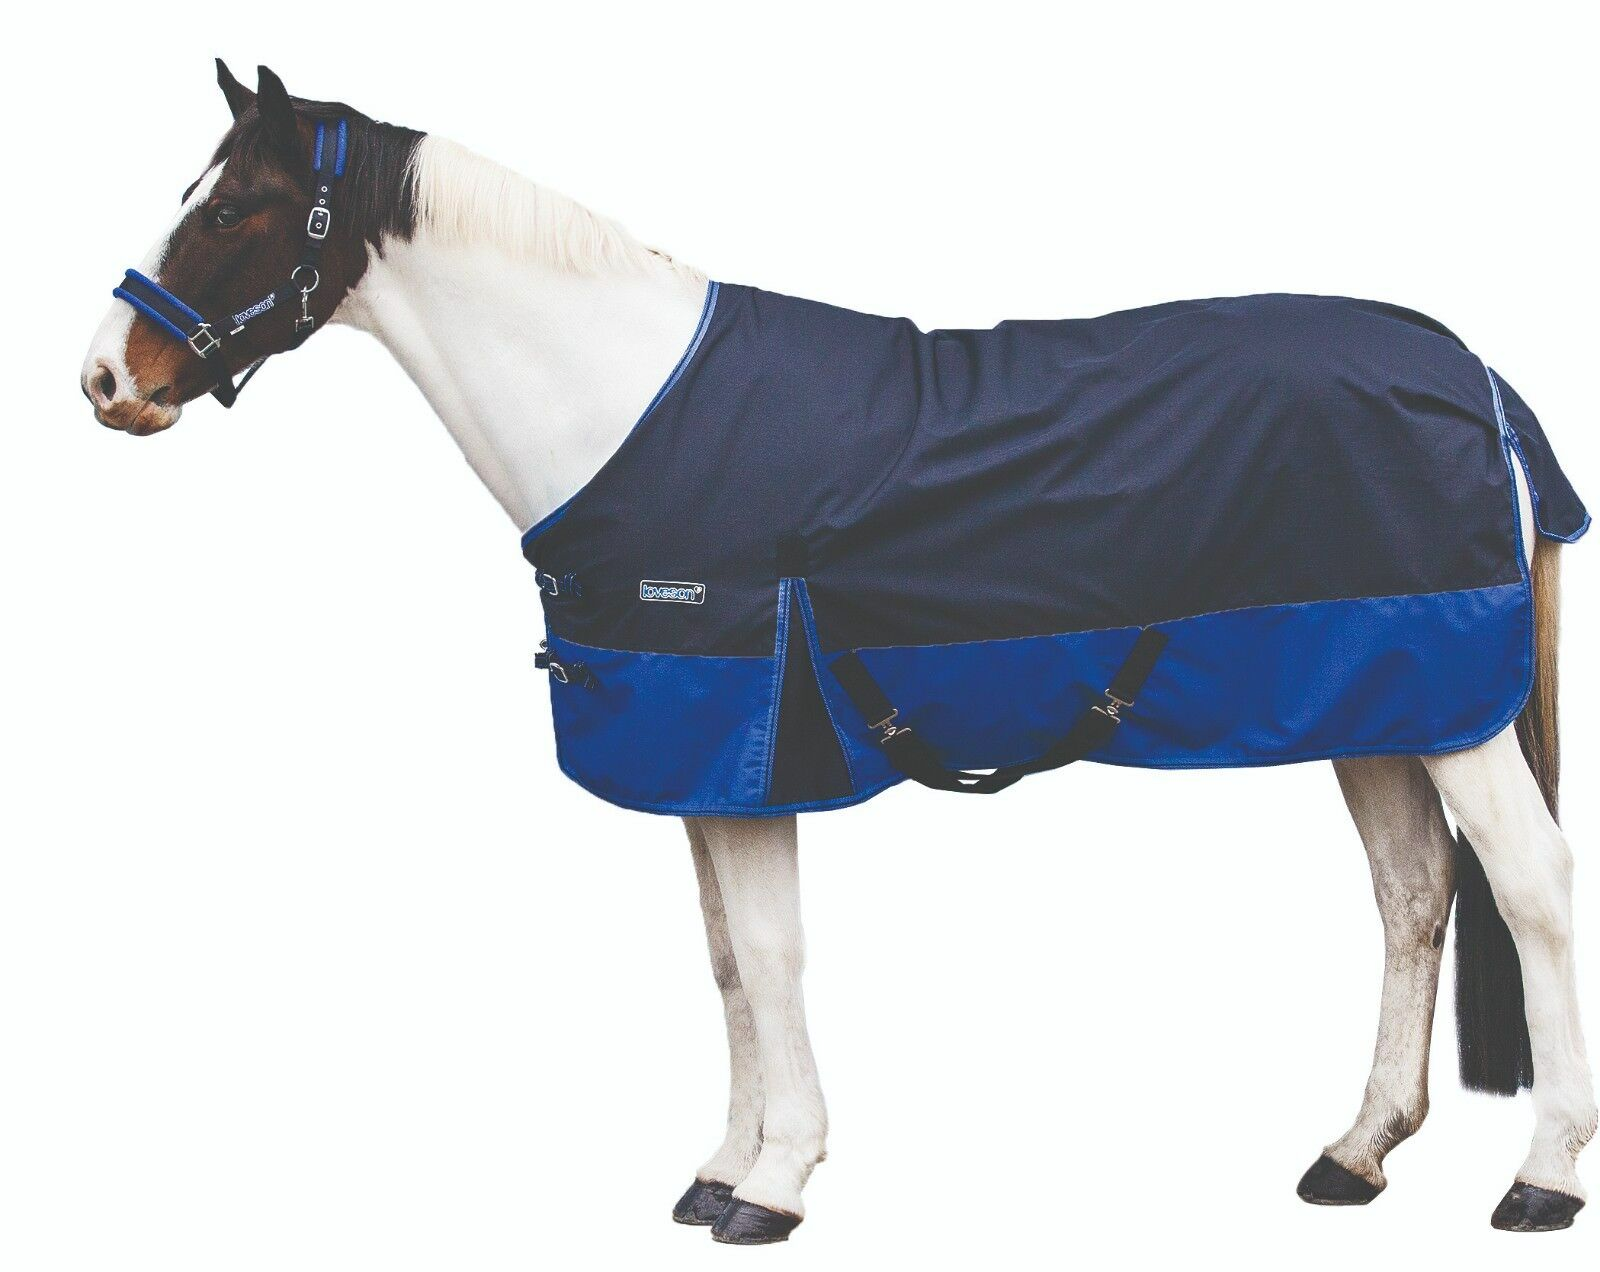 Loveson Net Lined Lightweight - Turnout Rug 0g Navy/Blau (5'0 - Lightweight 7'0) 52b42b